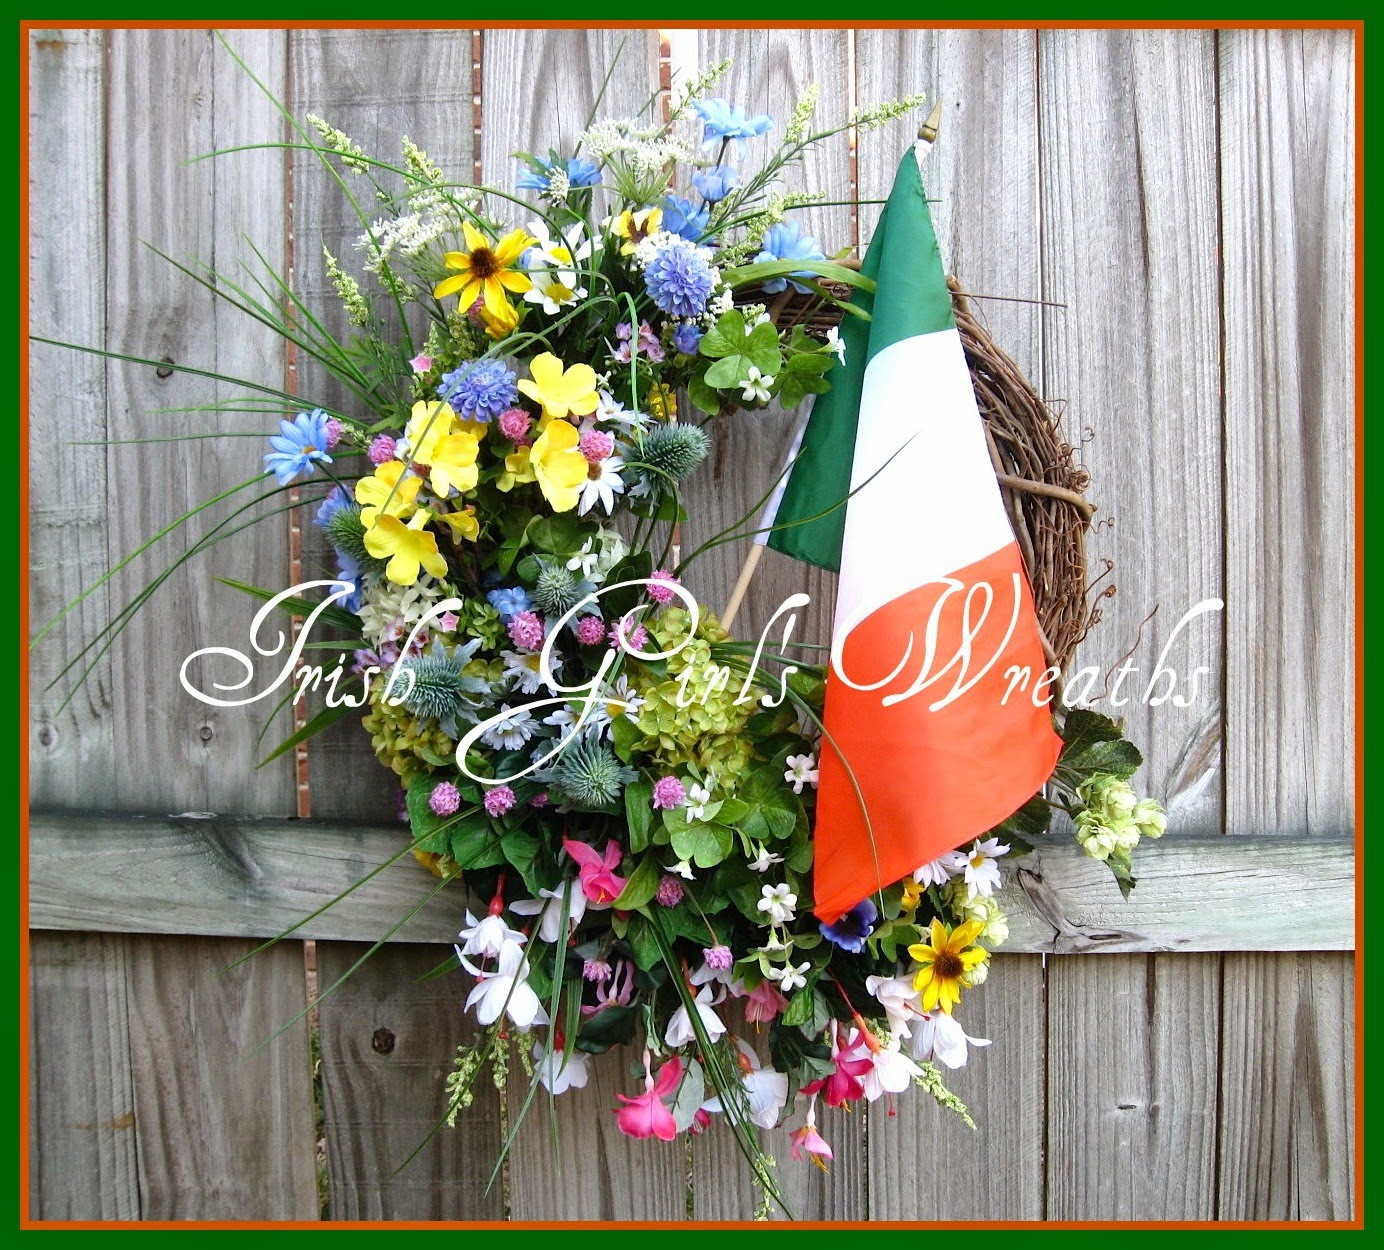 Wild Ireland Irish Wildflowers XXL Wreath